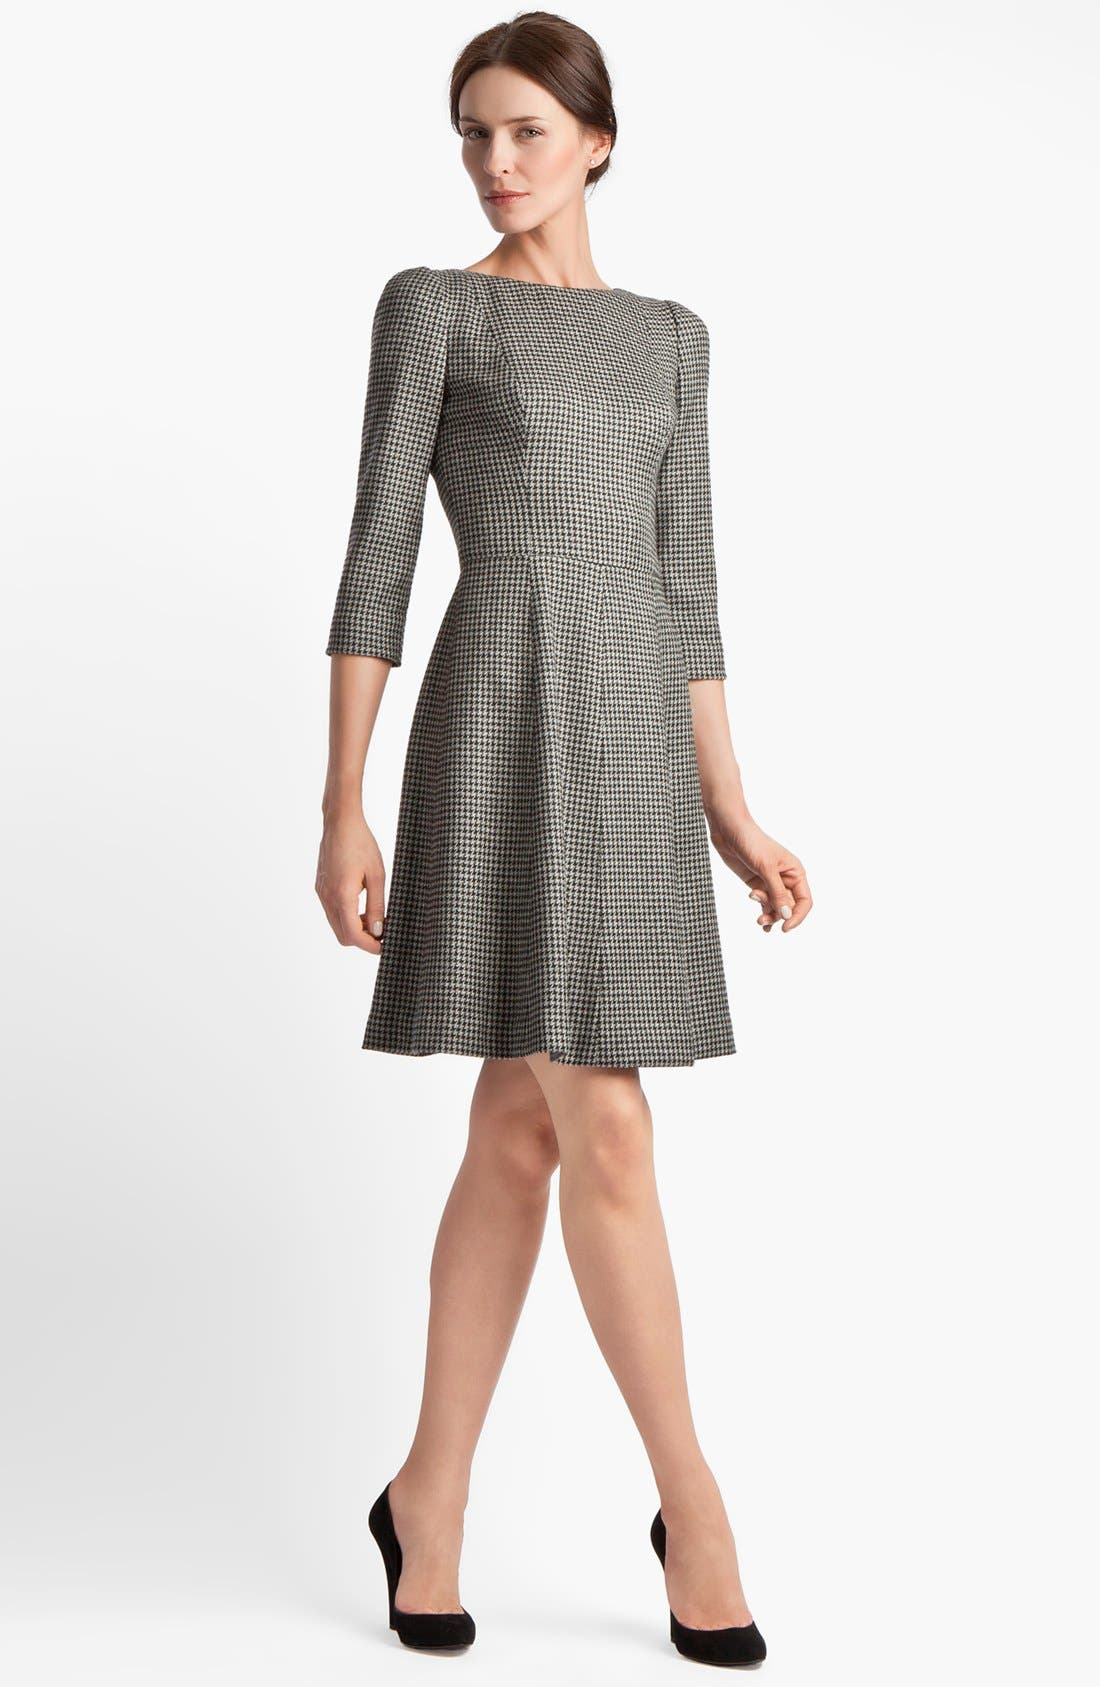 Main Image - Dolce&Gabbana Stretch Houndstooth Dress